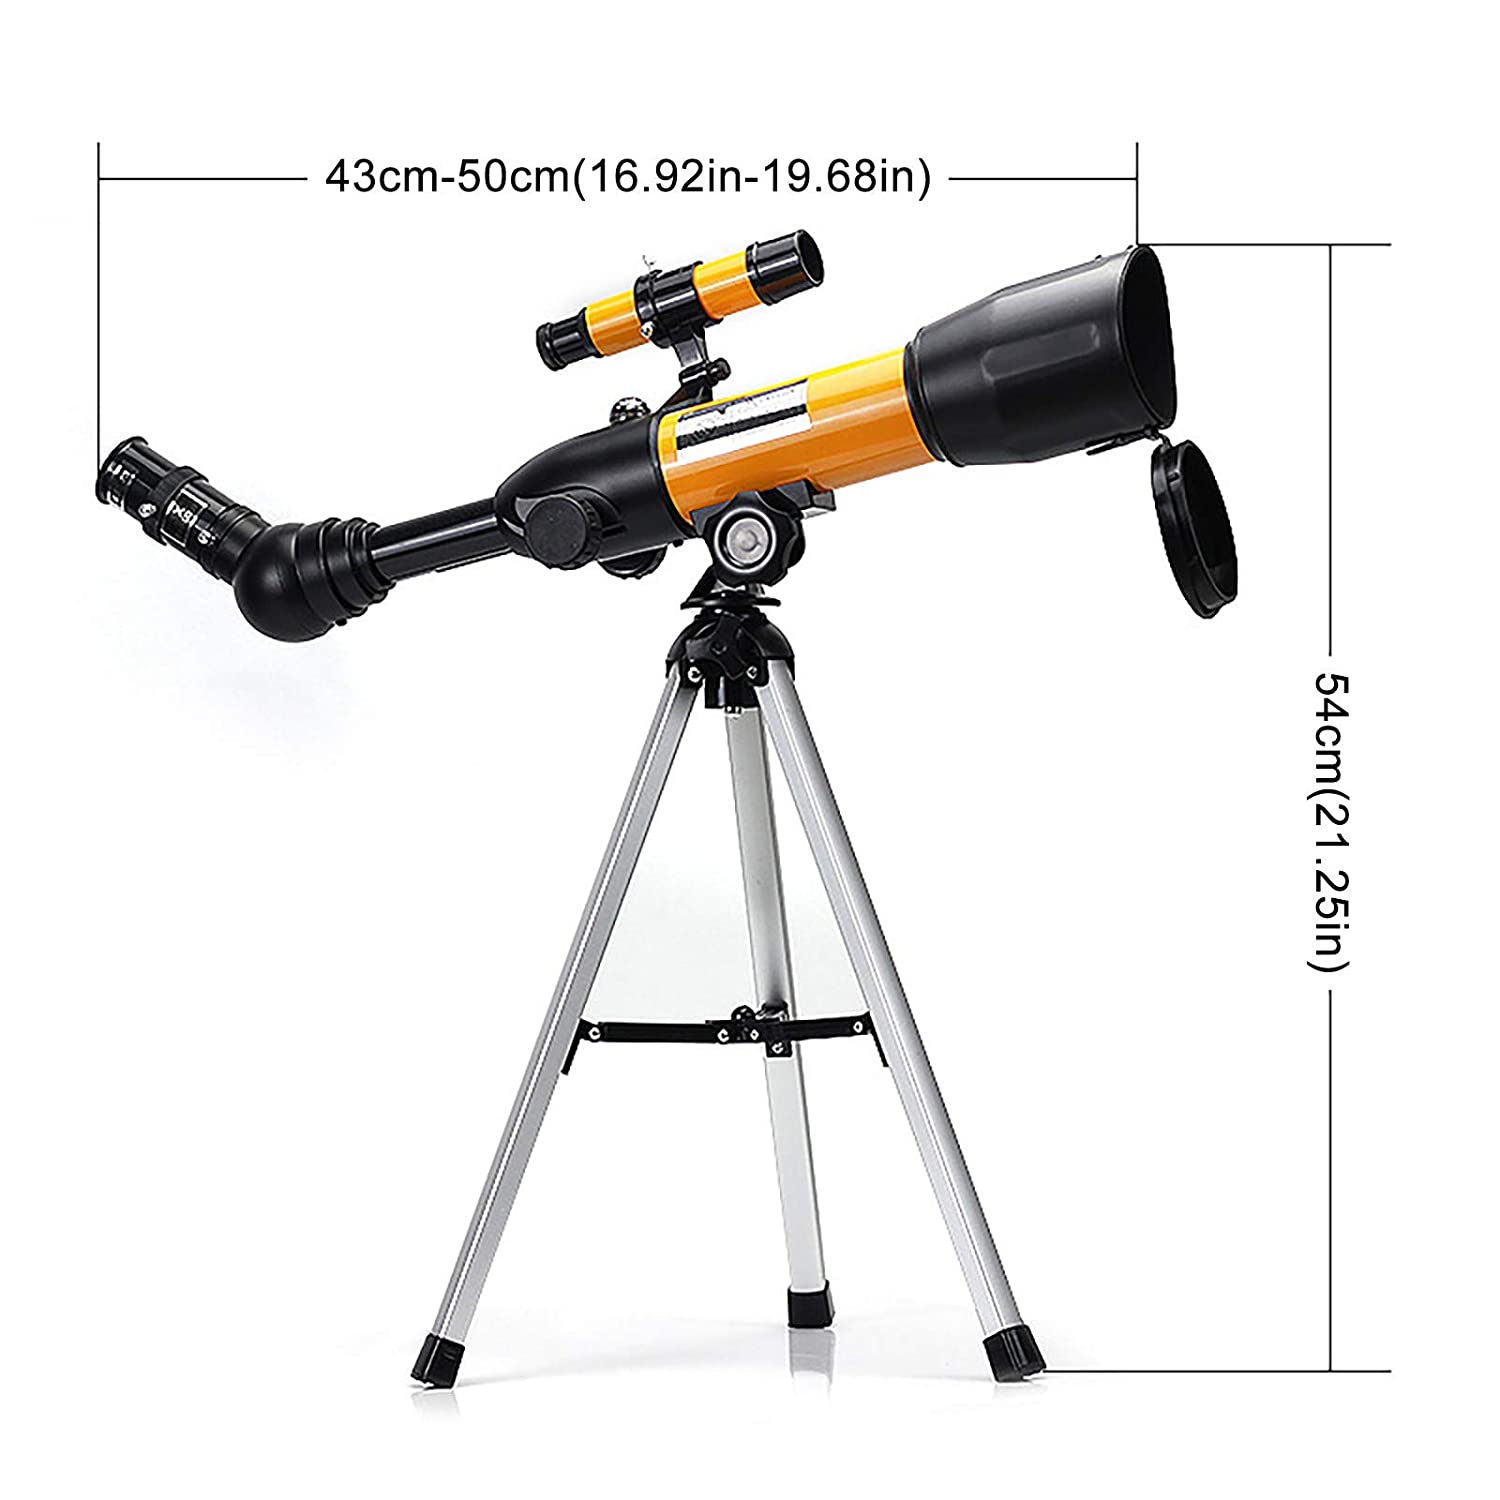 Telescope for Adults /& Kids /& Beginner Aperture Astronomical Telescope Refractor Tripod Finder for Camping and Stargazing in The Wild,Monocular for Stargazing and Planets Astronomy Gifts